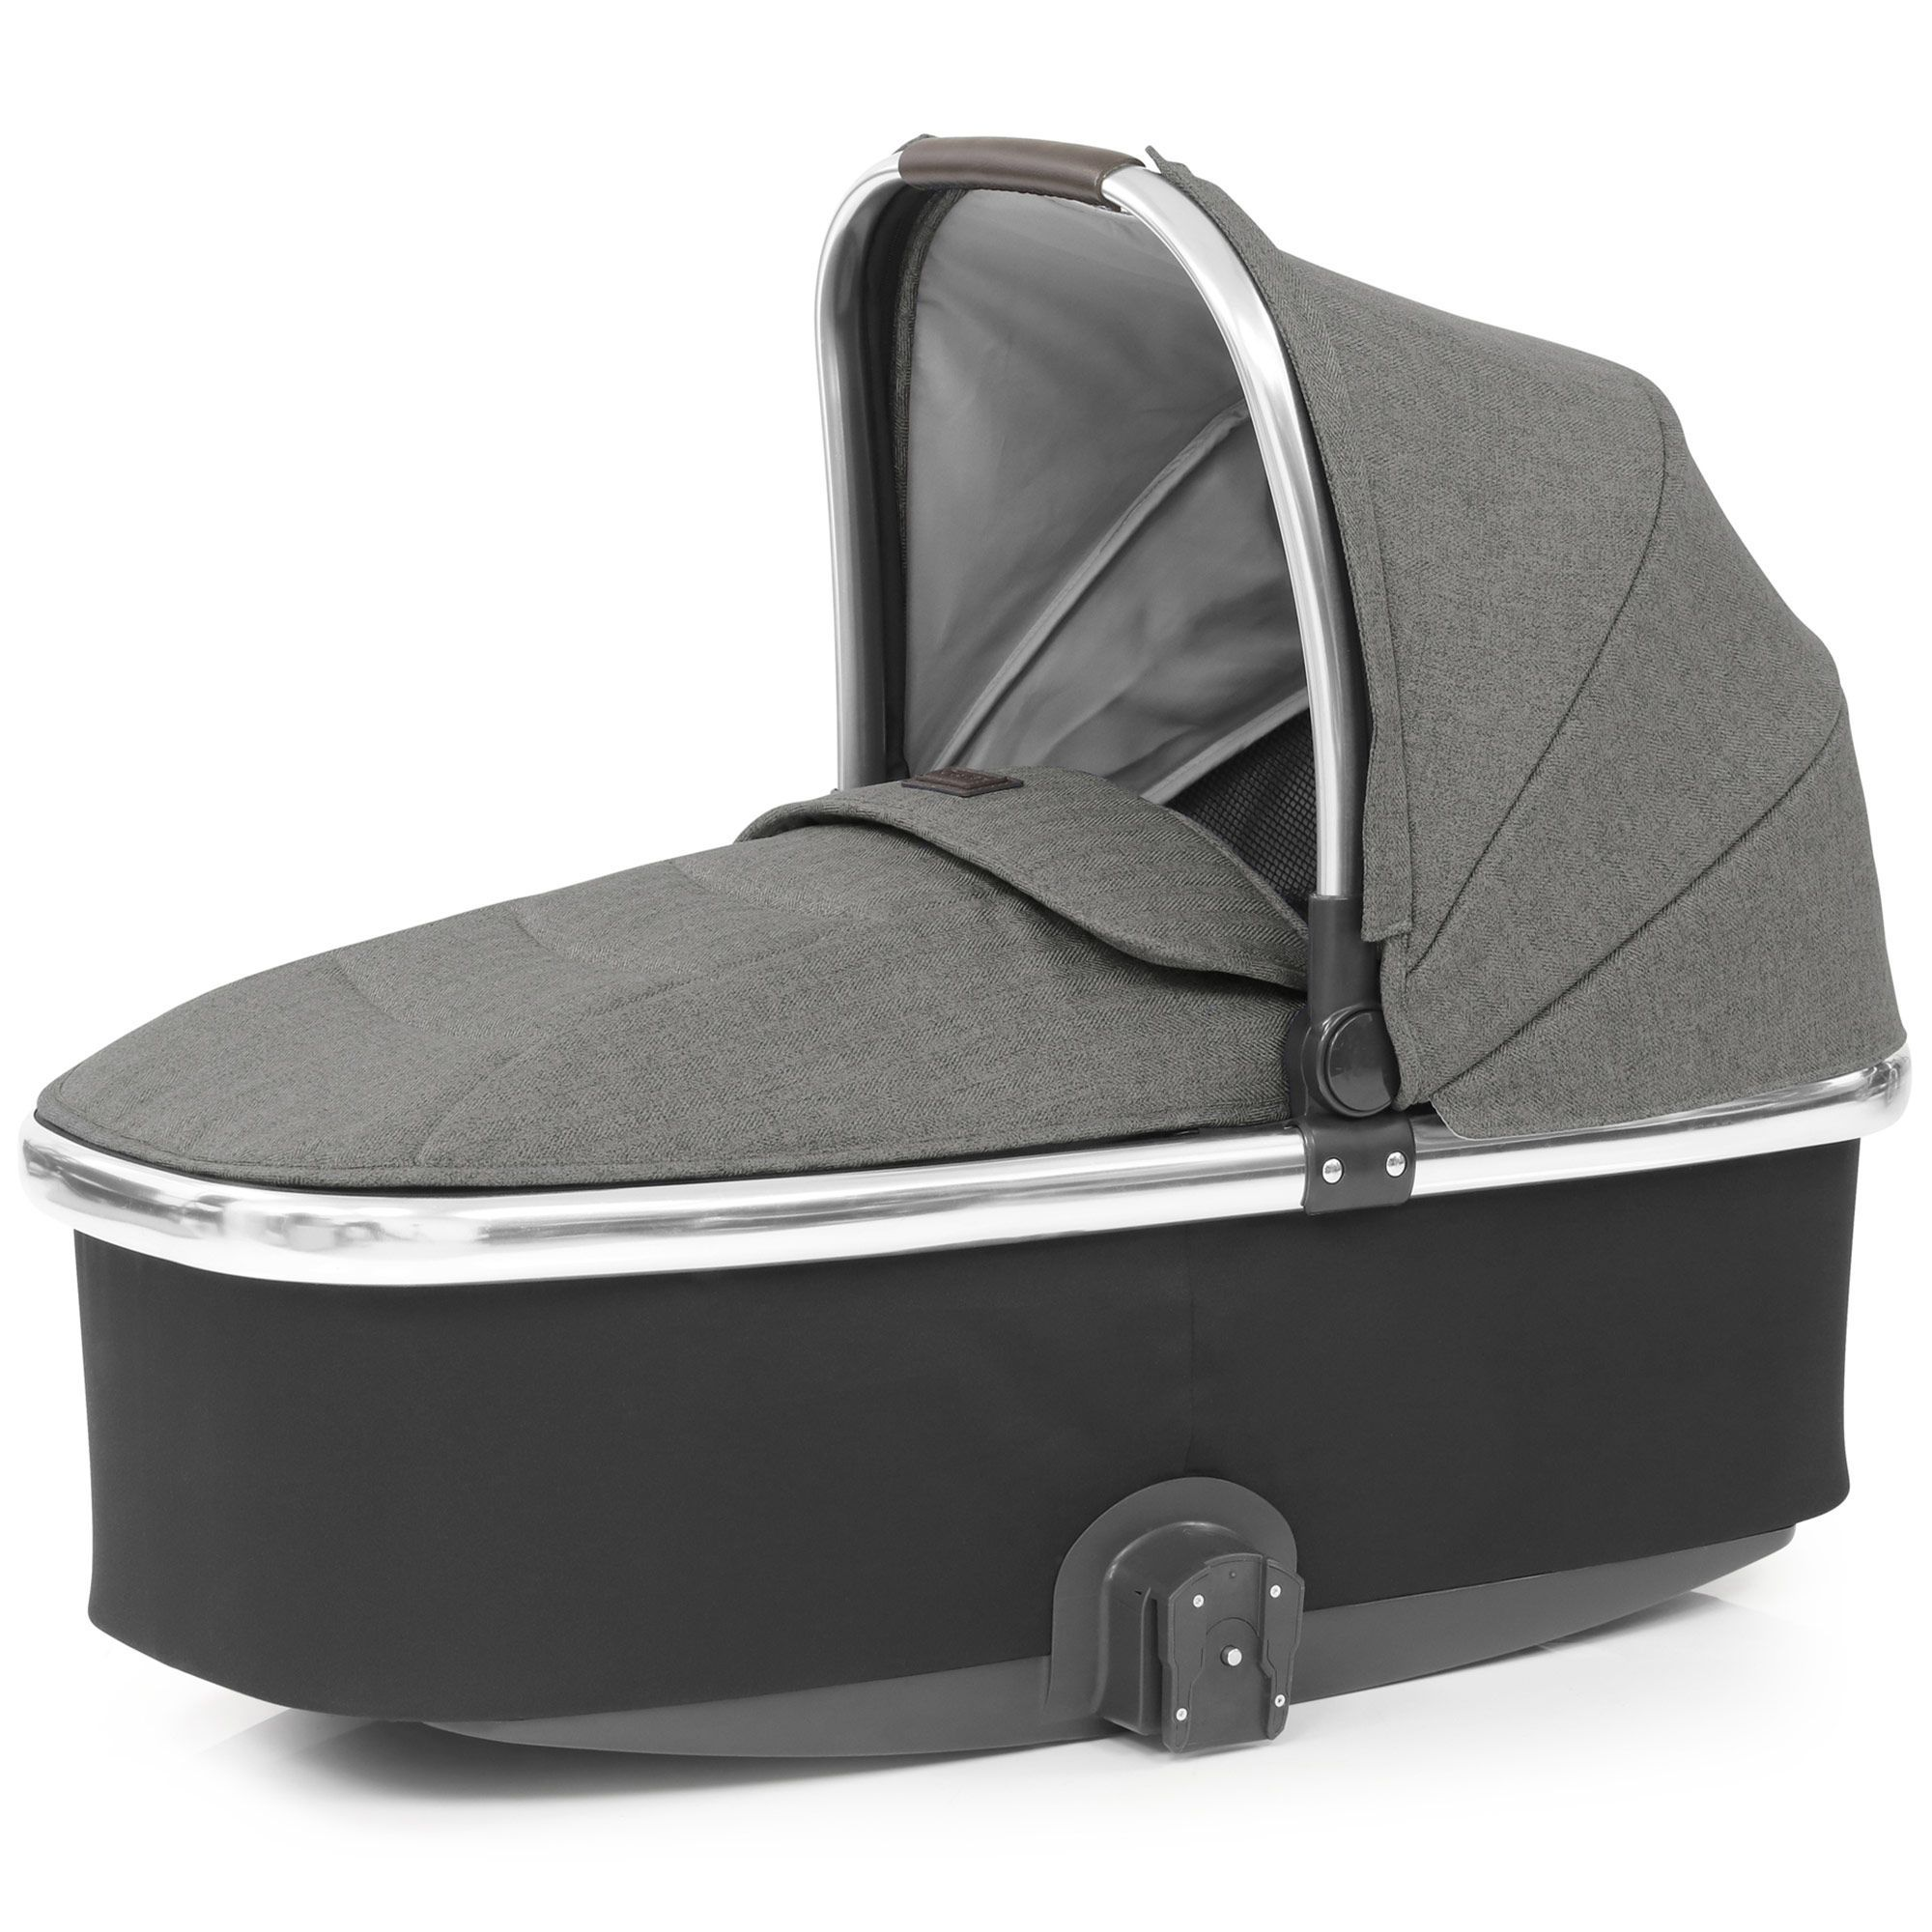 BABYSTYLE OYSTER PUSHCHAIR PRAM STROLLER SUN MESH PROTECTION UV BLACK OUT NEW